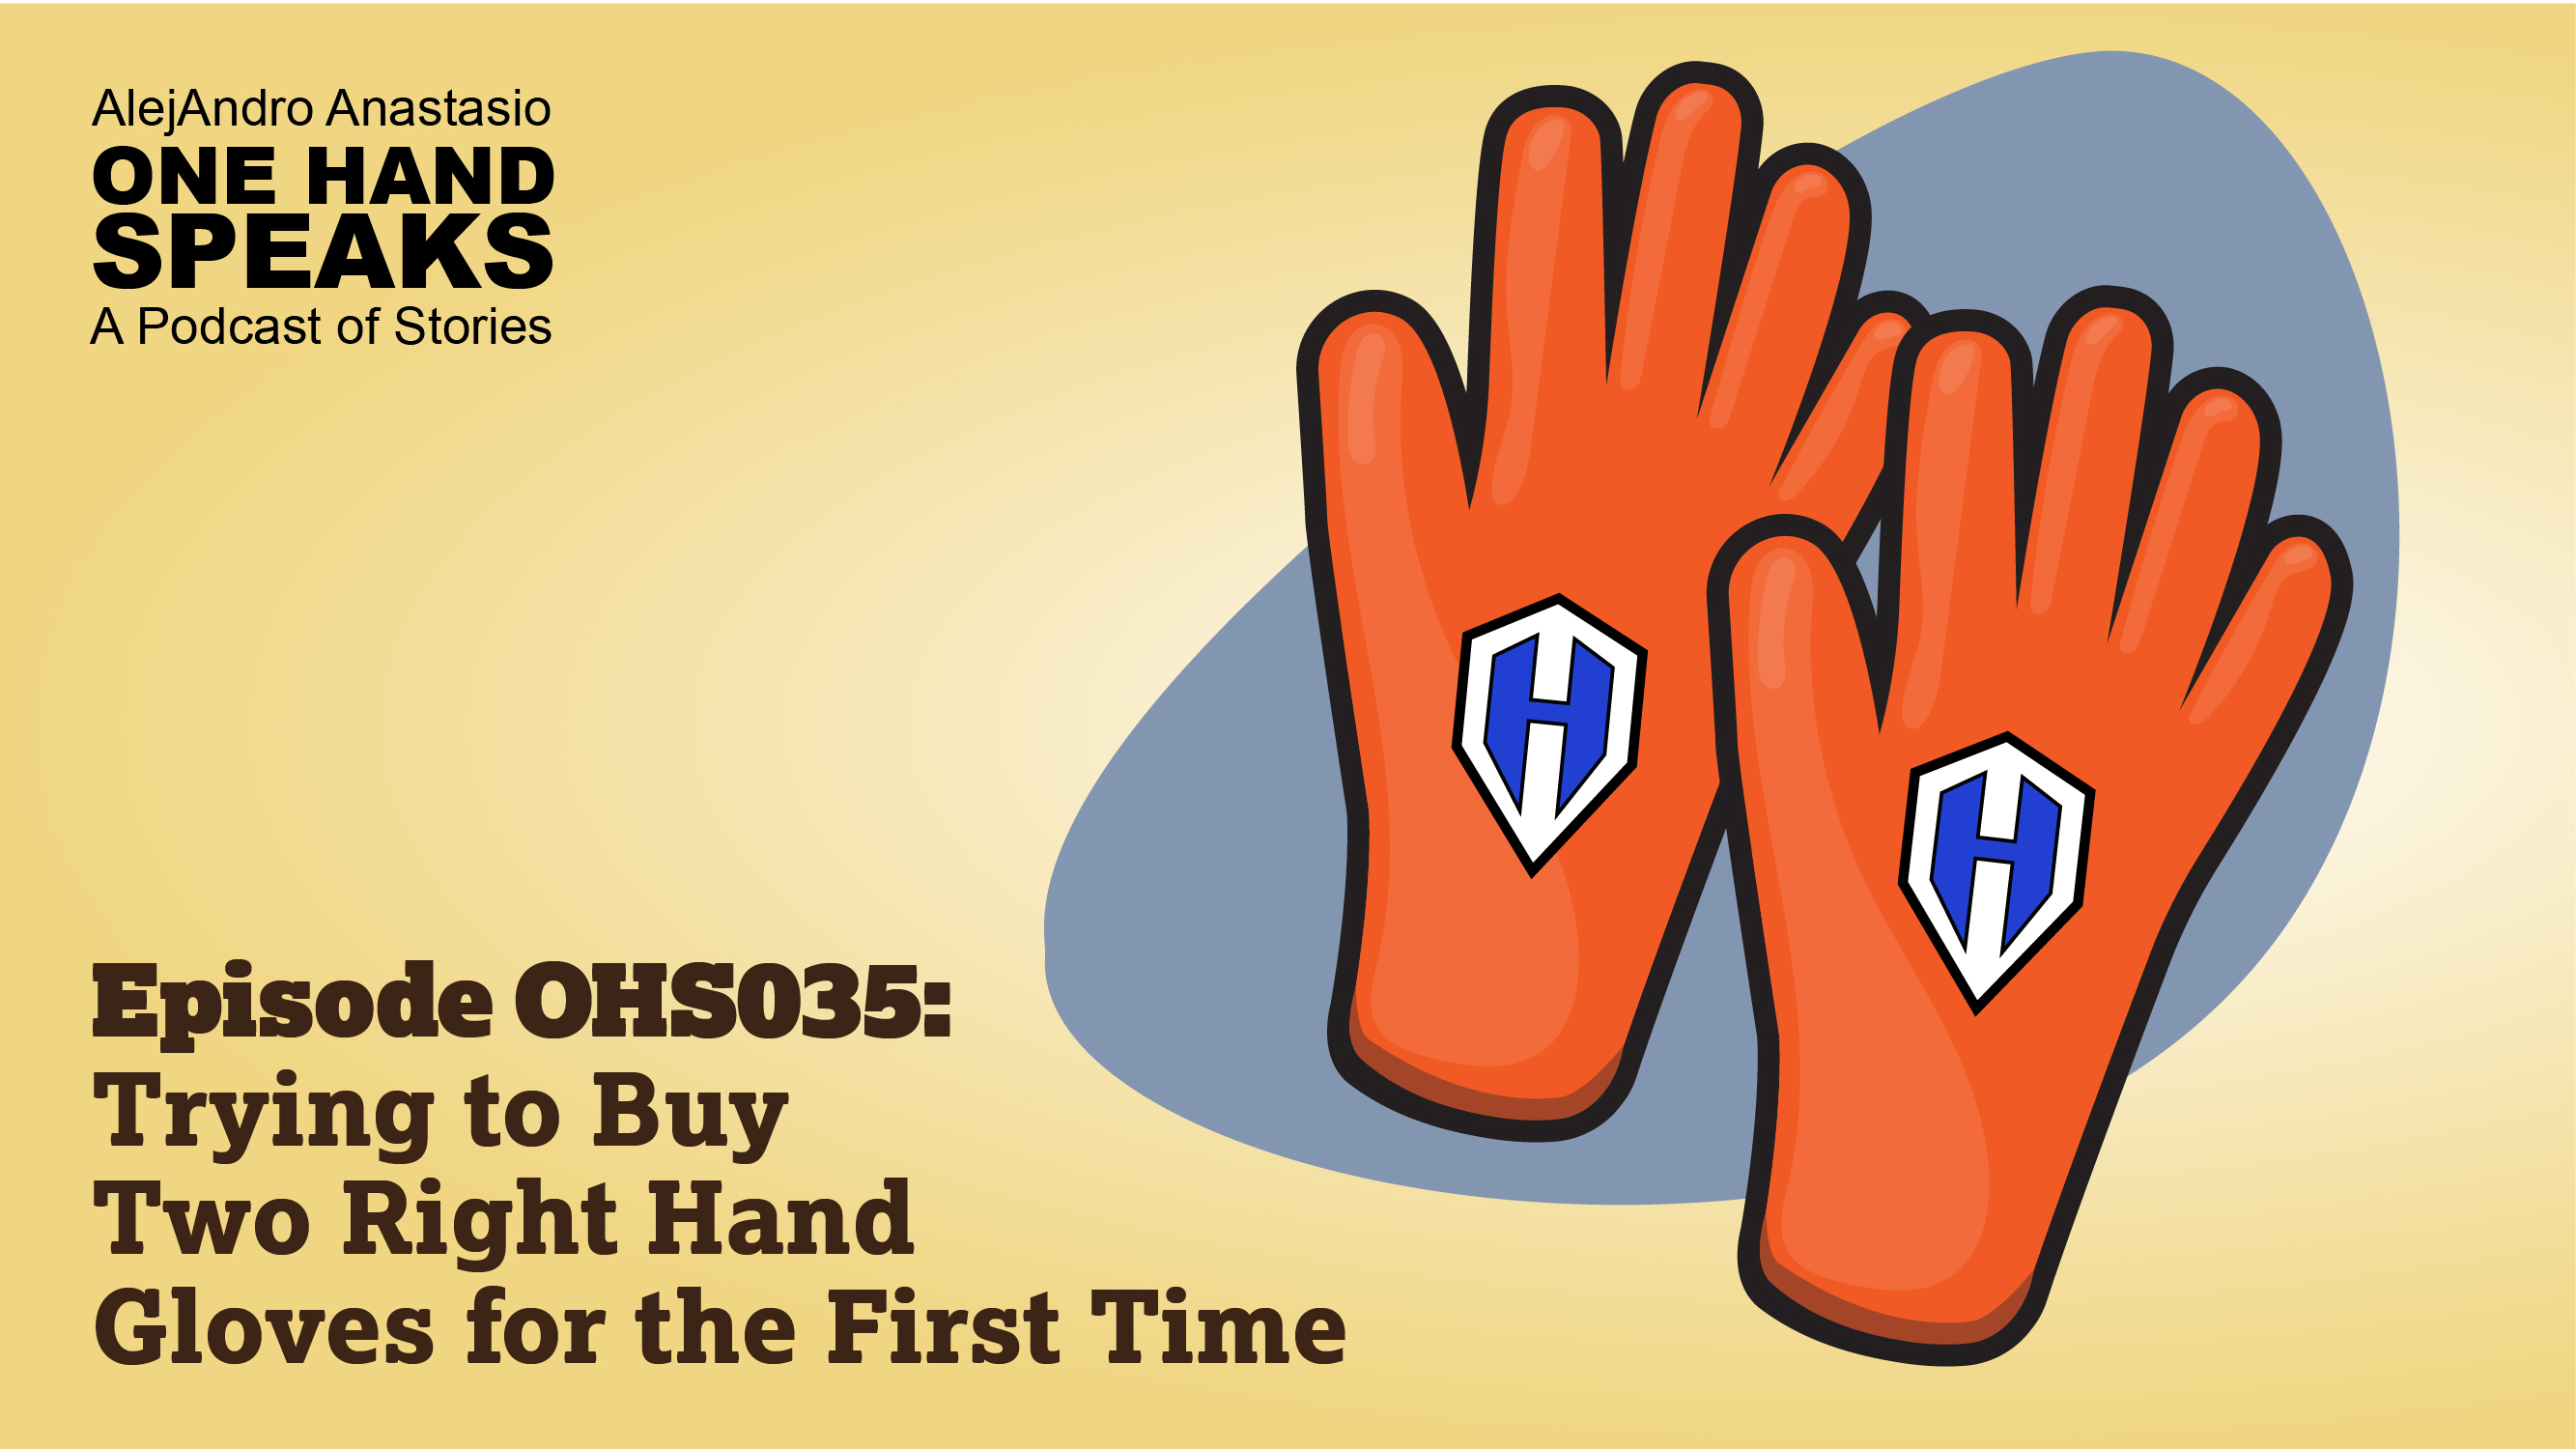 A cartoon like image of two orange right hand working gloves with AlejAndro's One Hand Speaks logo on them.